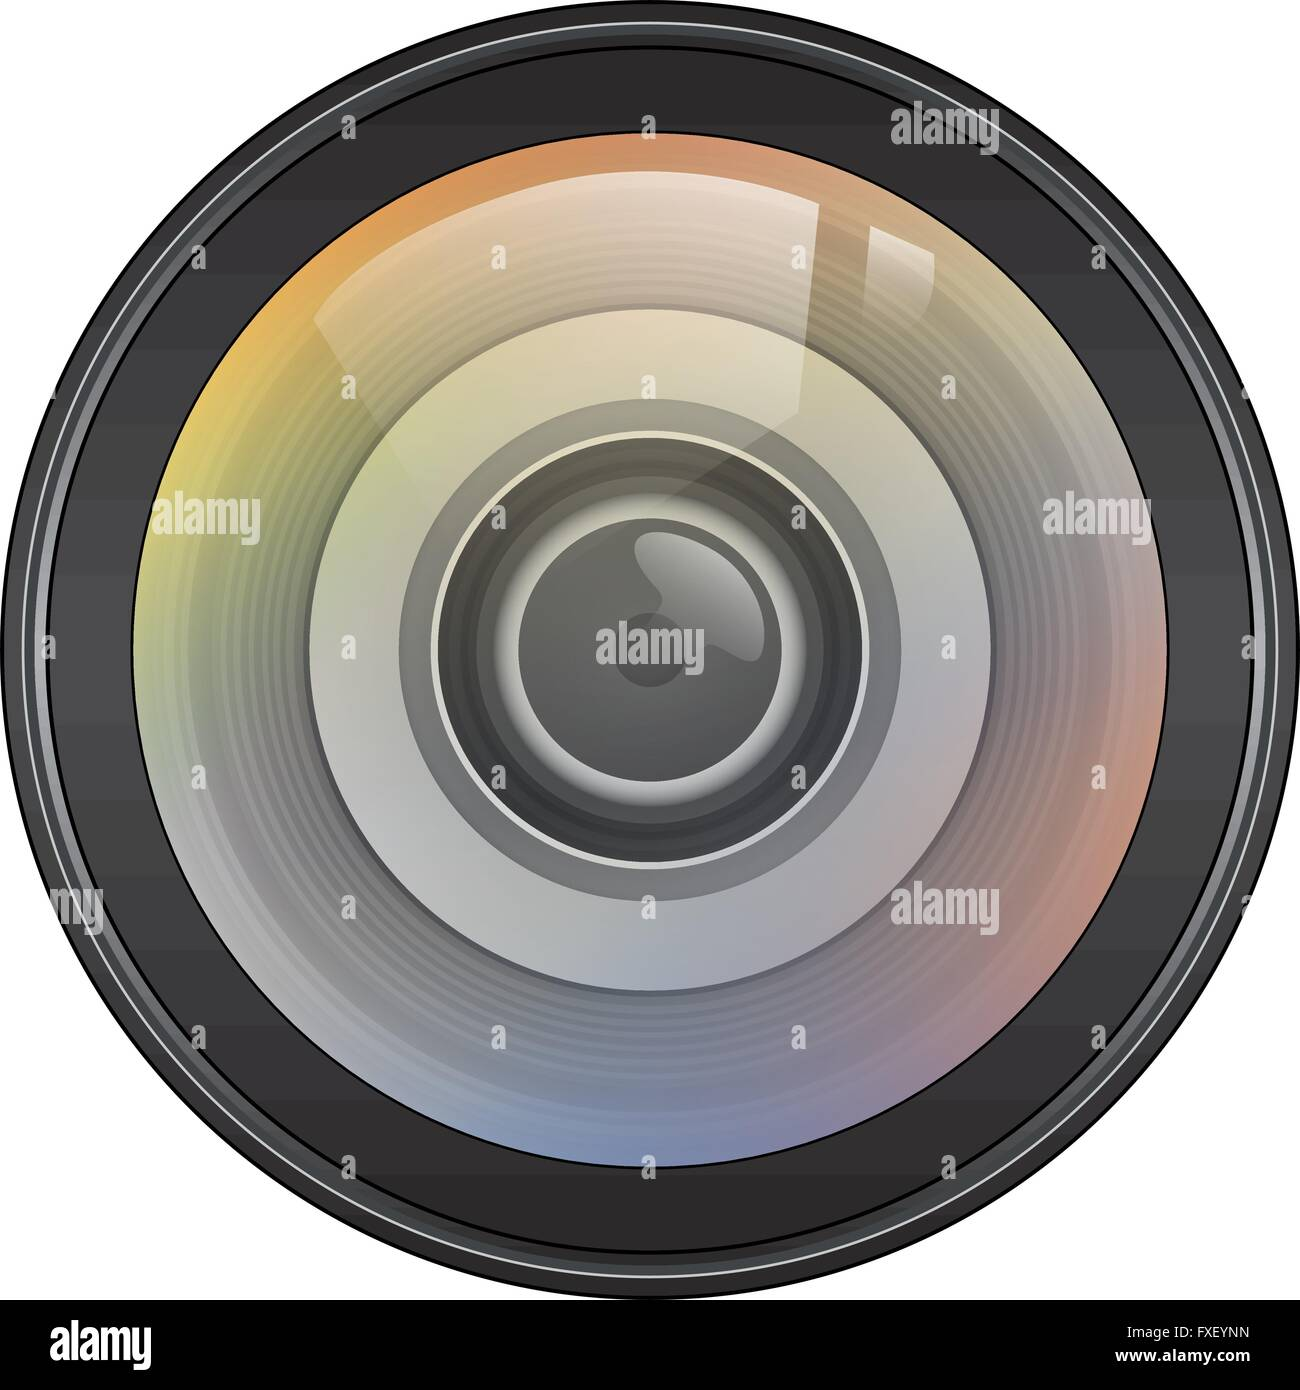 Illustration Vector Graphic Lens for the creative use in graphic design - Stock Image